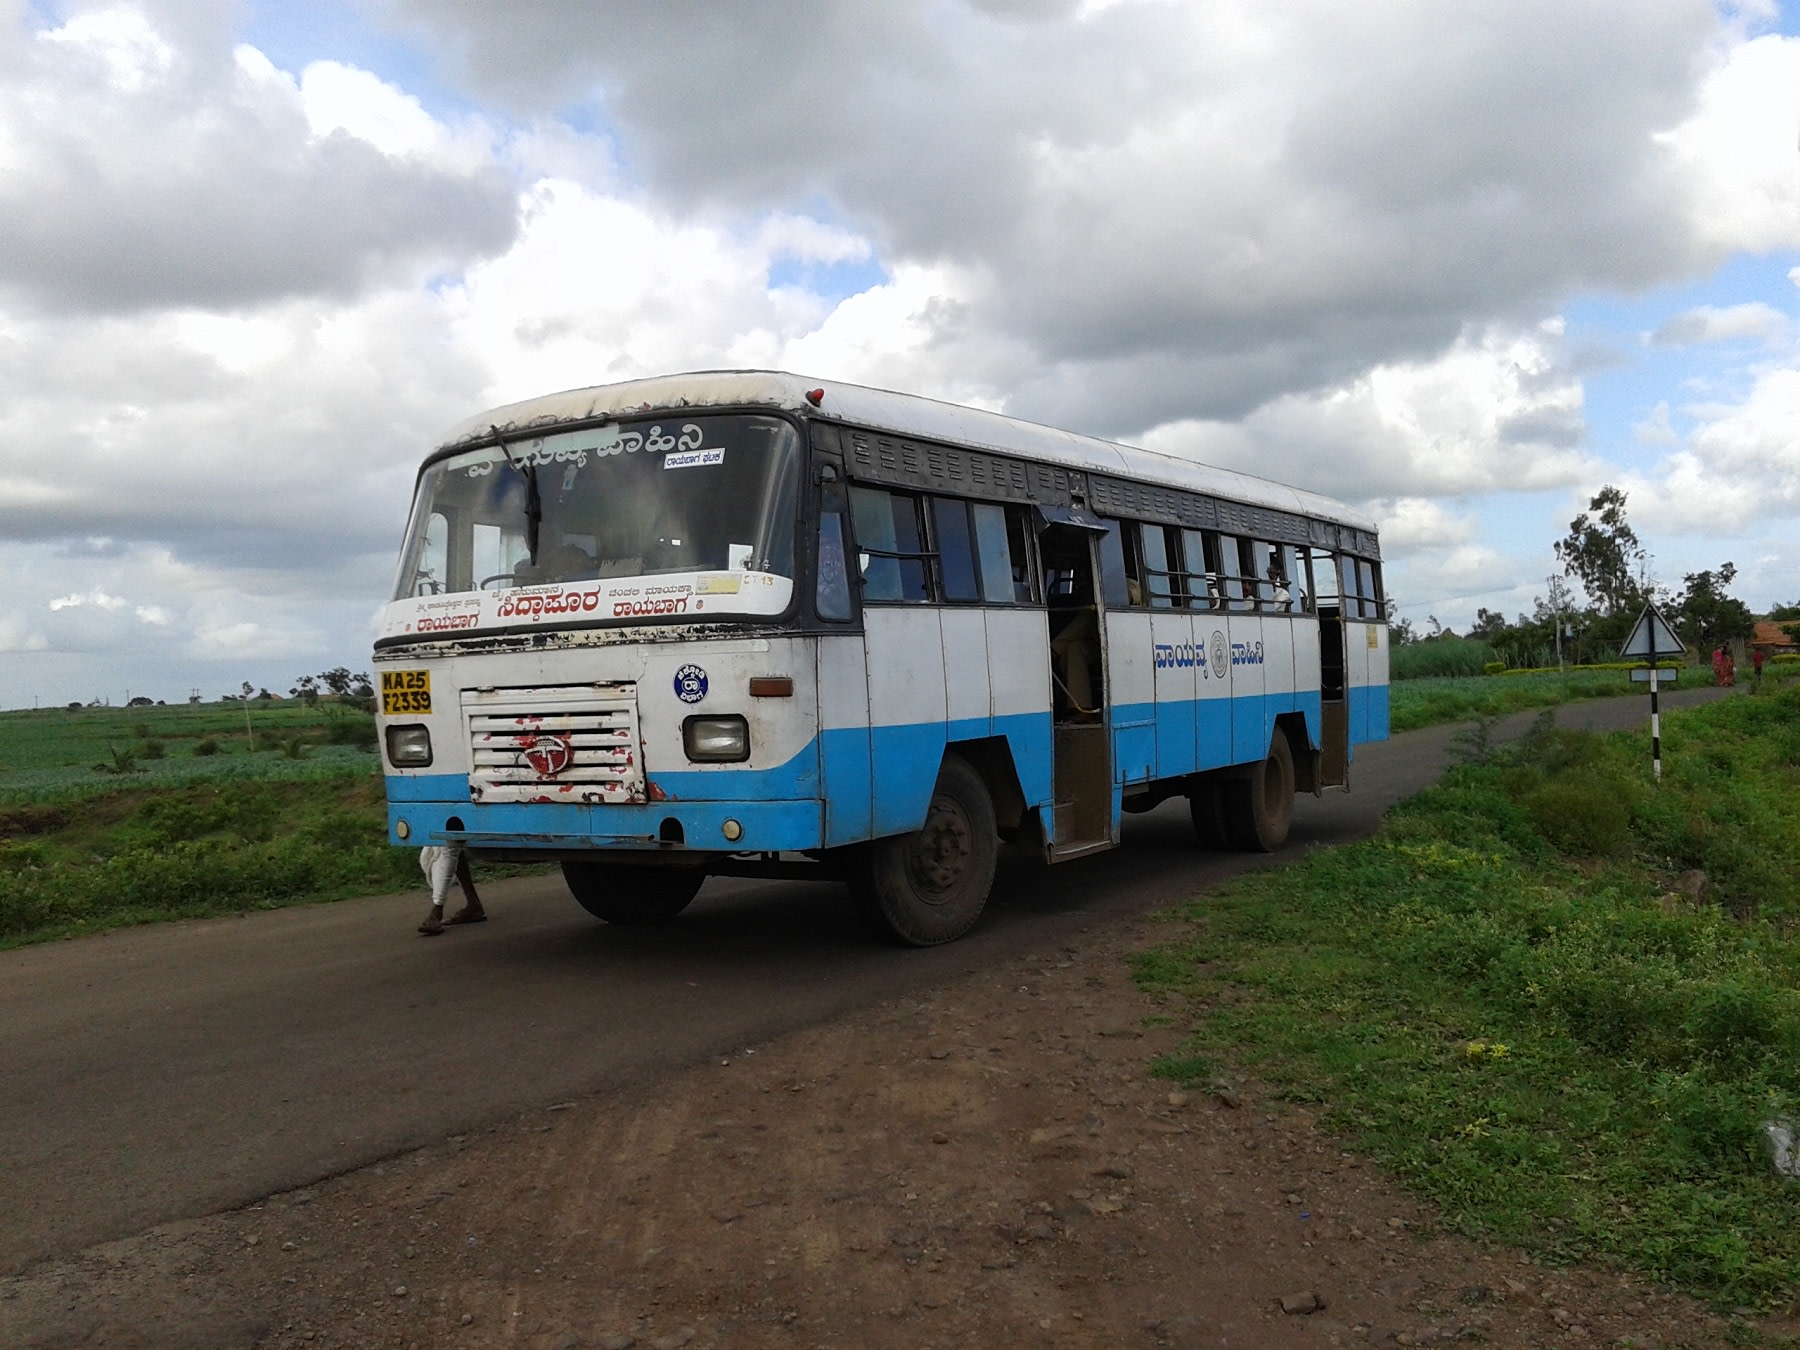 Most commonly used mode of transport in rural regions of Karnataka